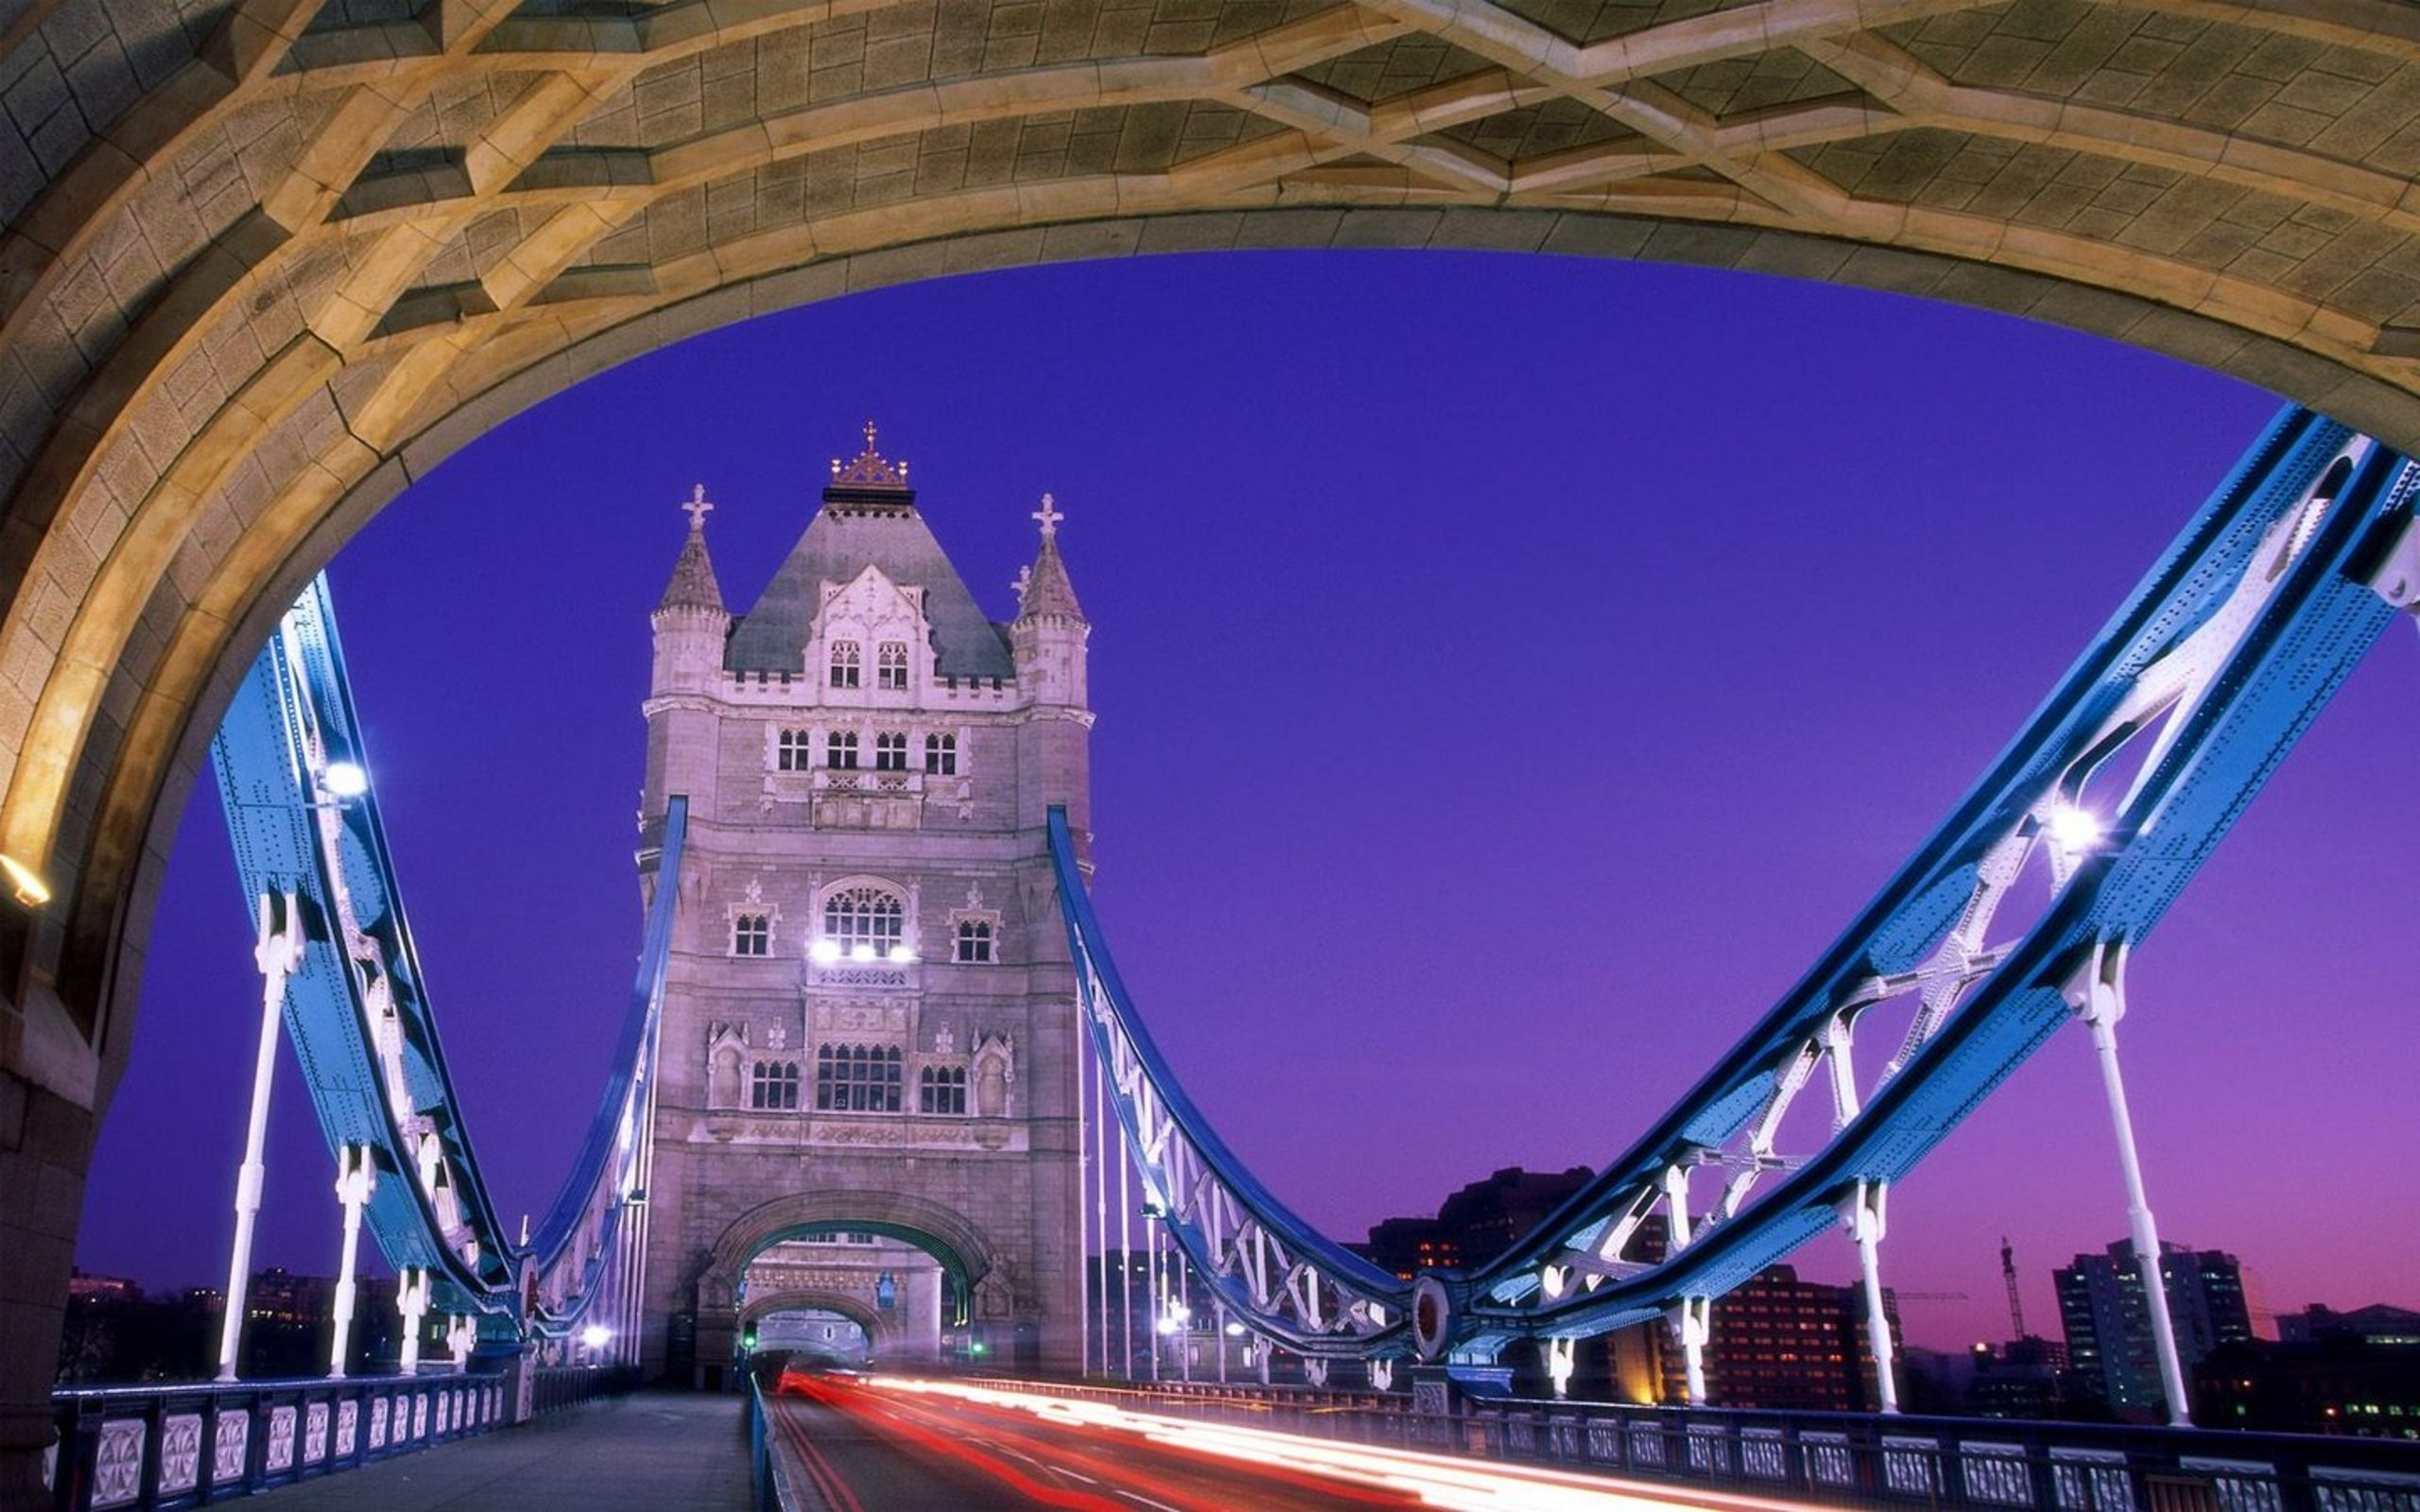 tower bridge london england wallpapers in jpg format for free download